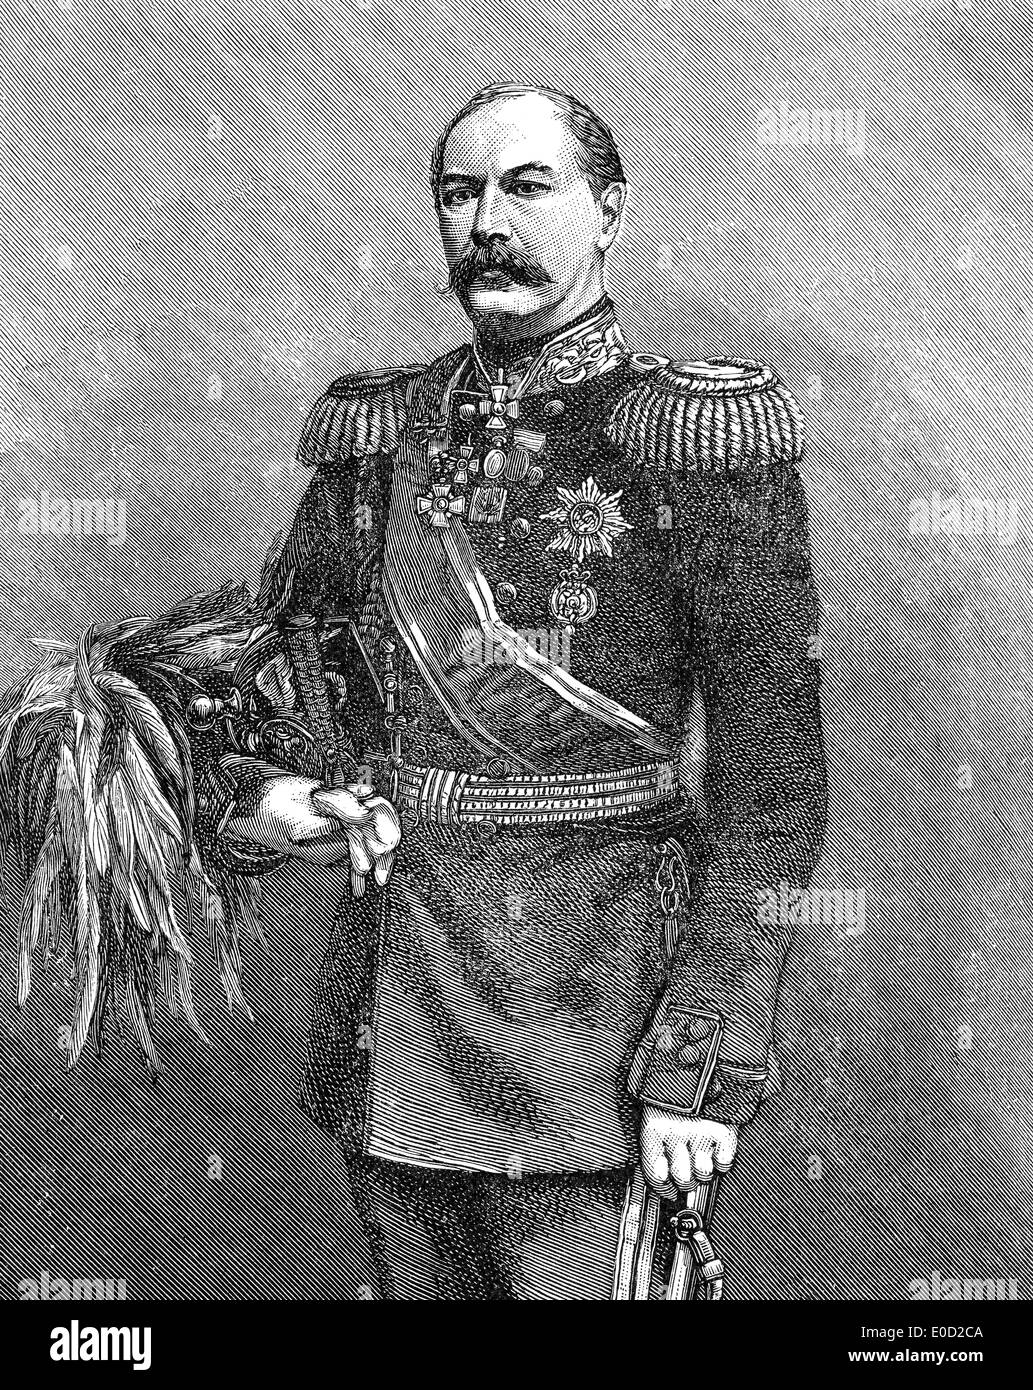 Eduard Ivanovich Totleben or Todleben, 1818-1884, a Baltic German military engineer and Imperial Russian Army general - Stock Image